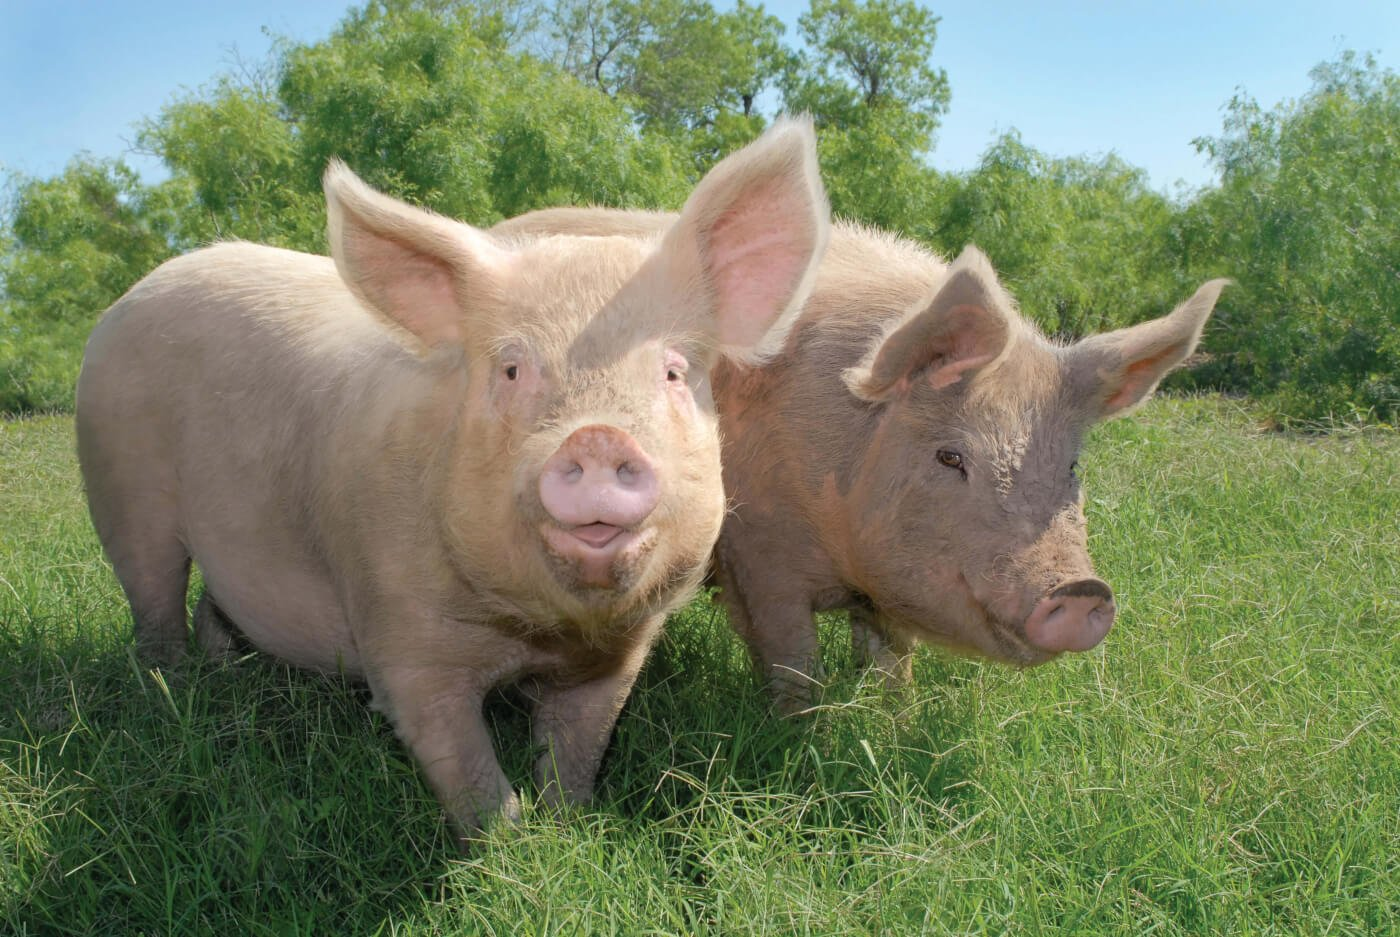 Happy Pigs from Rescued Calendar